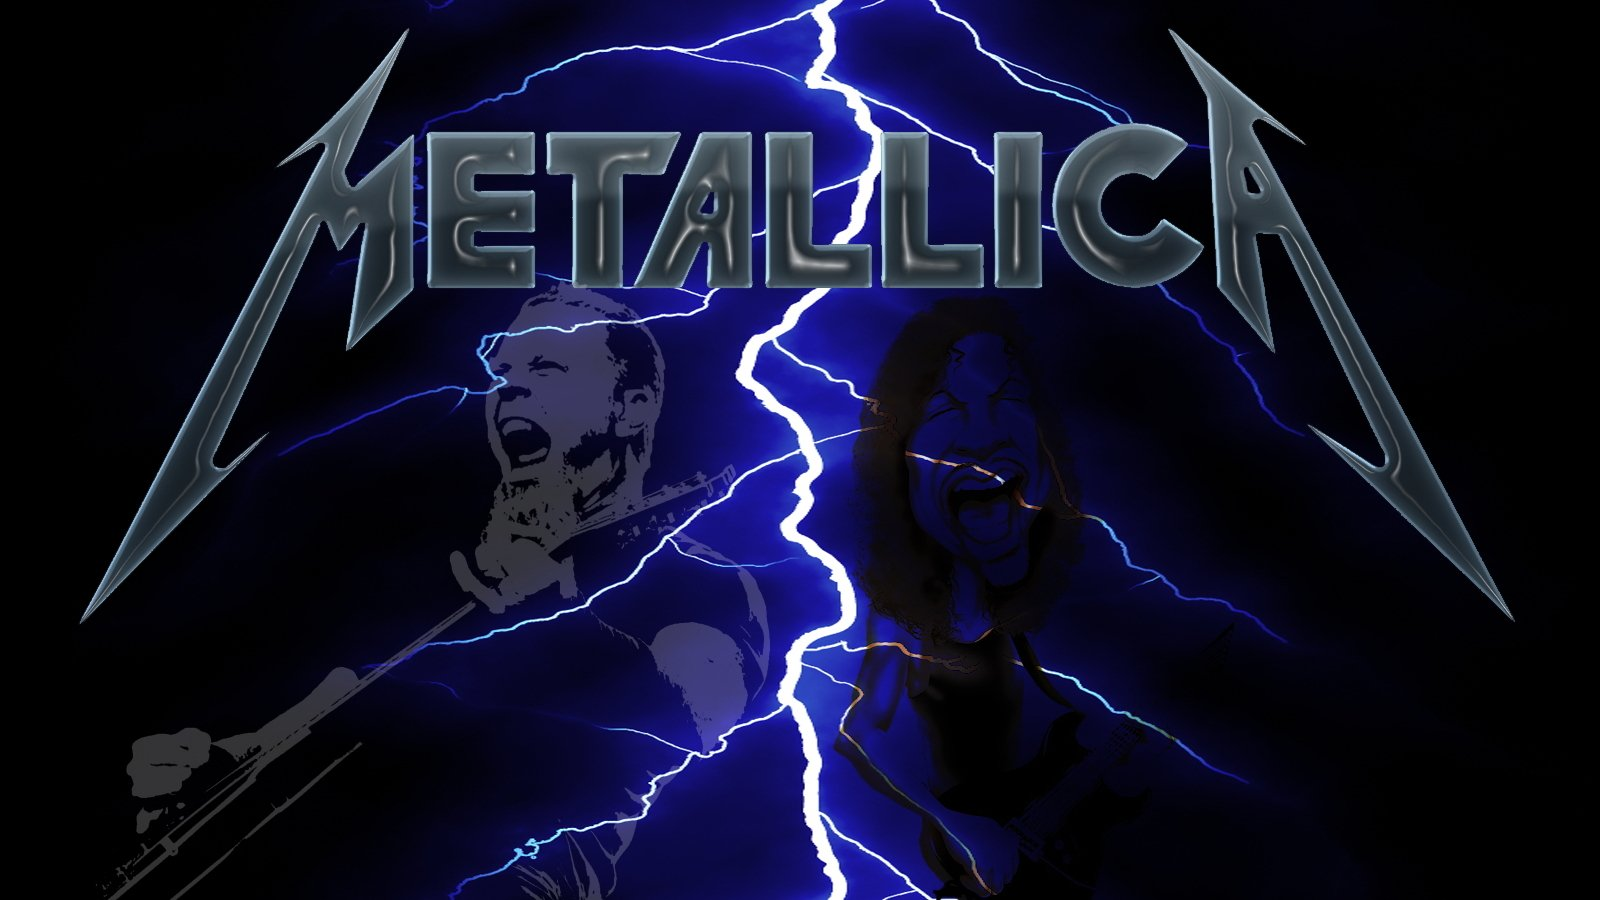 78 Metallica HD Wallpapers   Background Images   Wallpaper Abyss HD Wallpaper   Background Image ID 278191